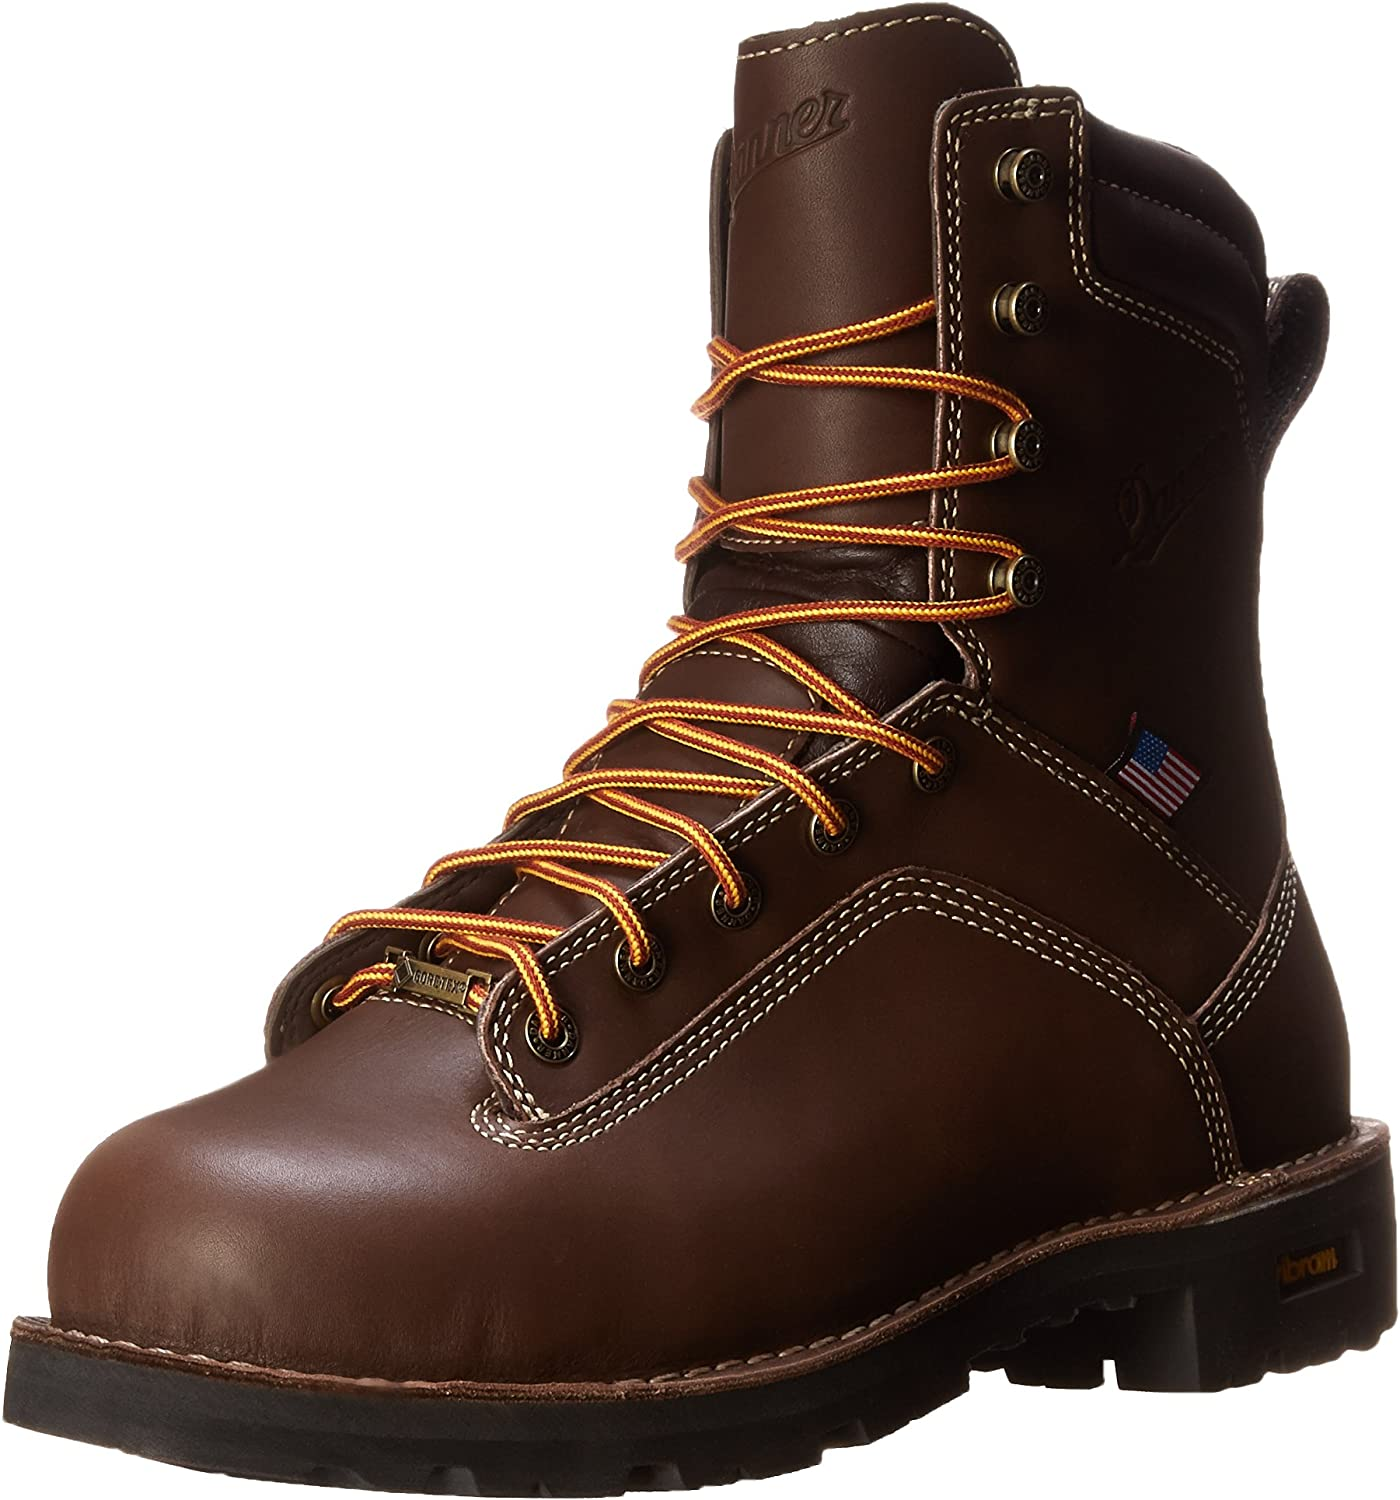 Danner Men's Quarry USA 8-Inch BR AT Work Boot